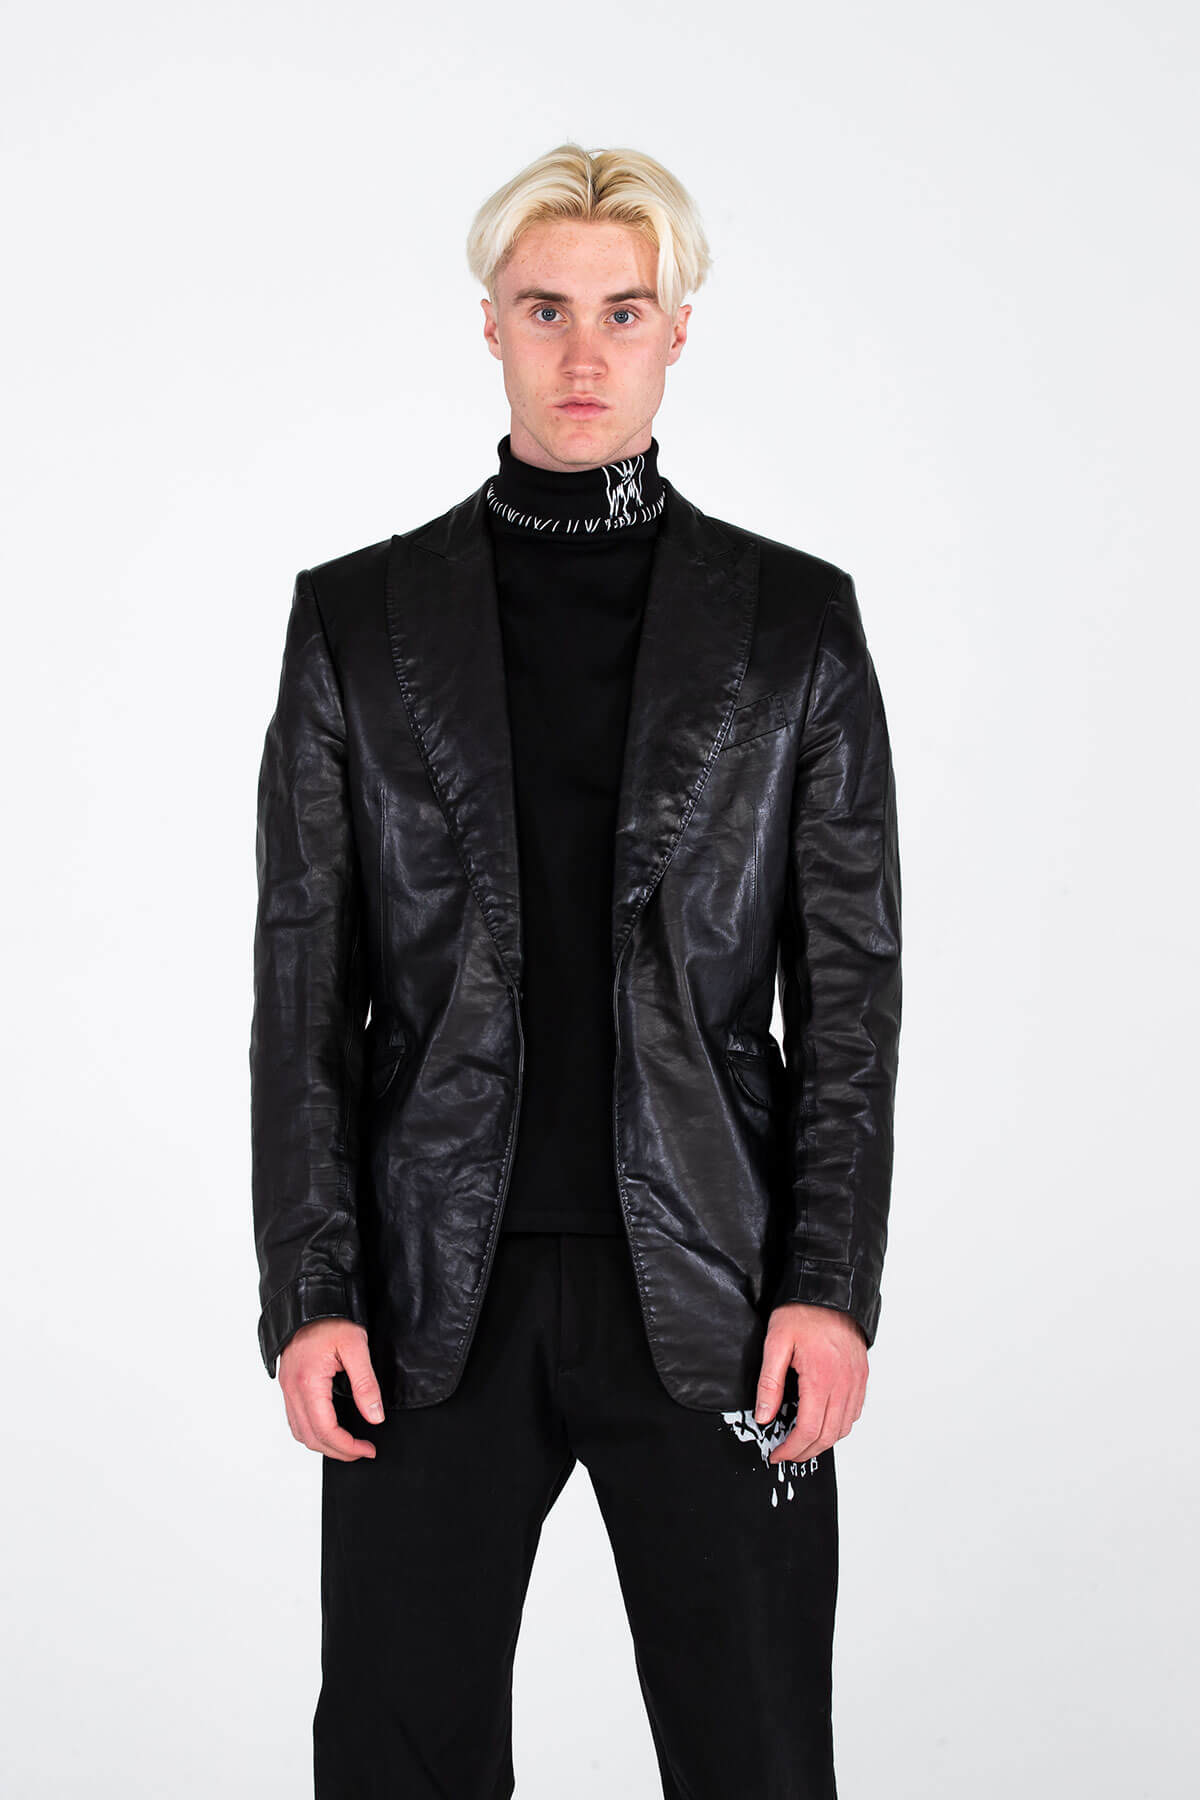 CLASSIC LEATHER JACKET – HAND CRAFTED - ARCHIVE JACKET - MJB